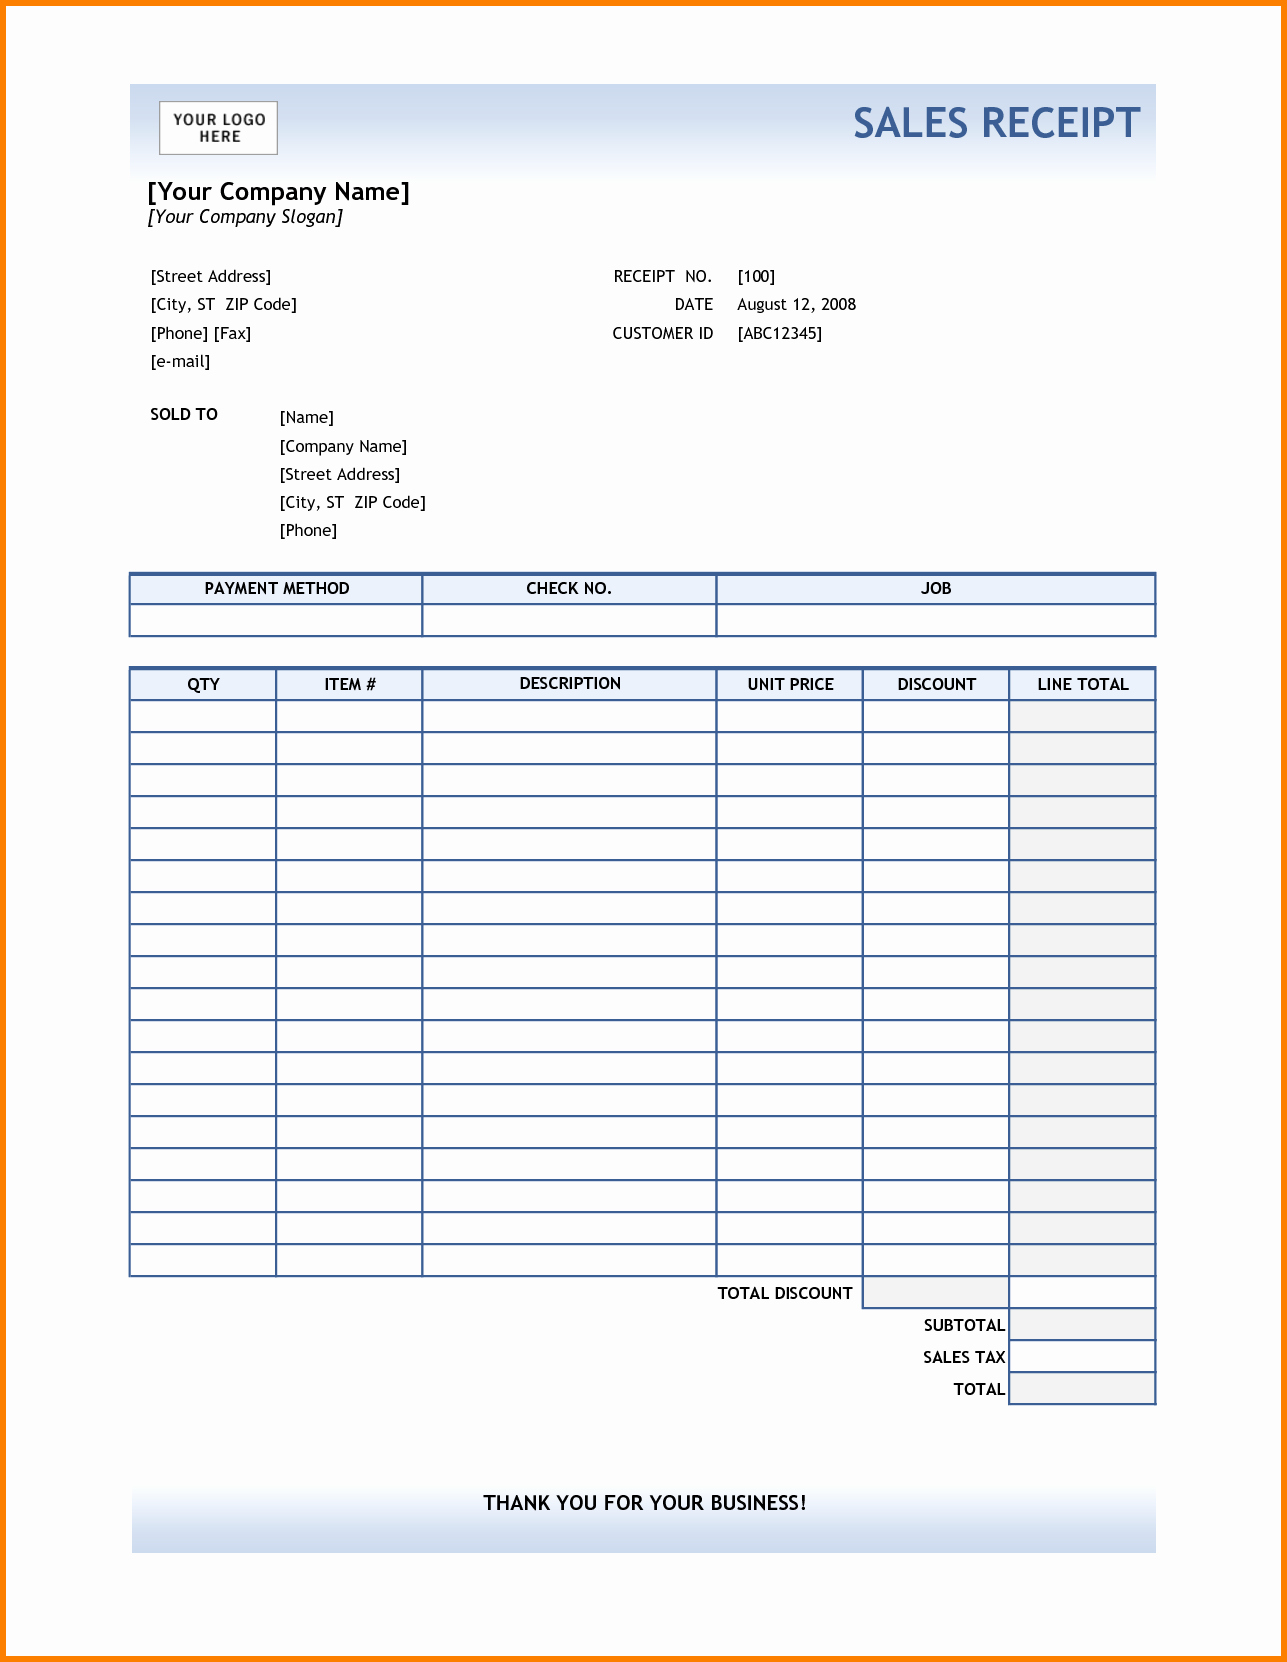 Receipt for Work Done Template Luxury Work Receipts Examples Bing Images